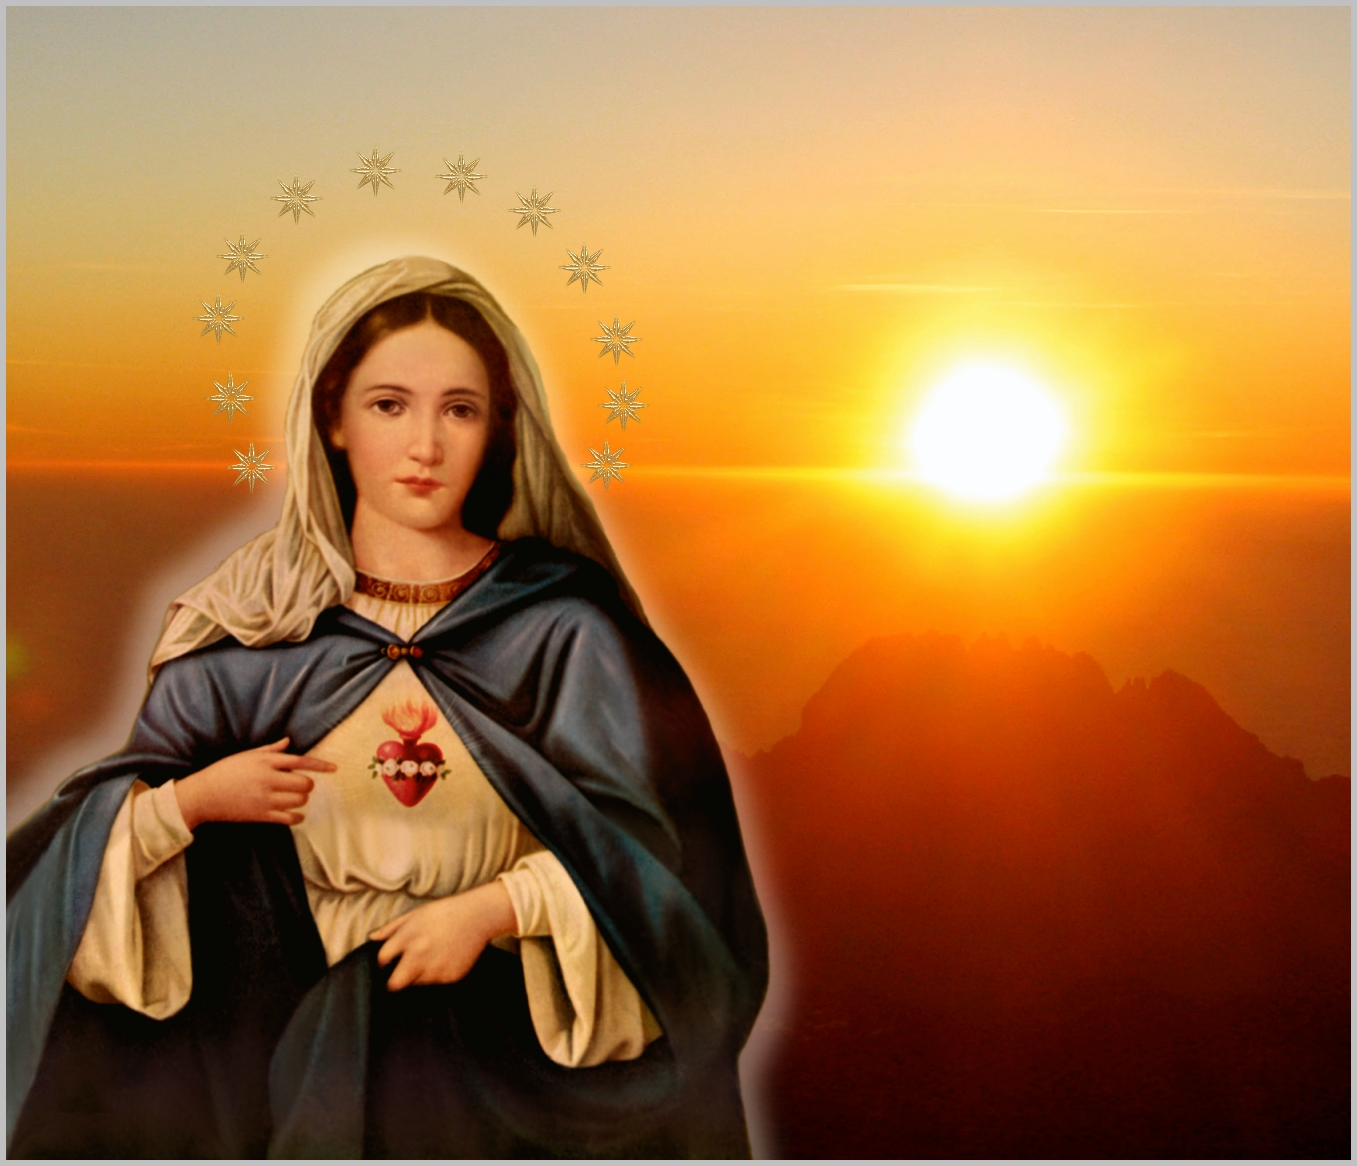 IMMACULATE HEART OF MARY WITH SUNSET BACKGROUND